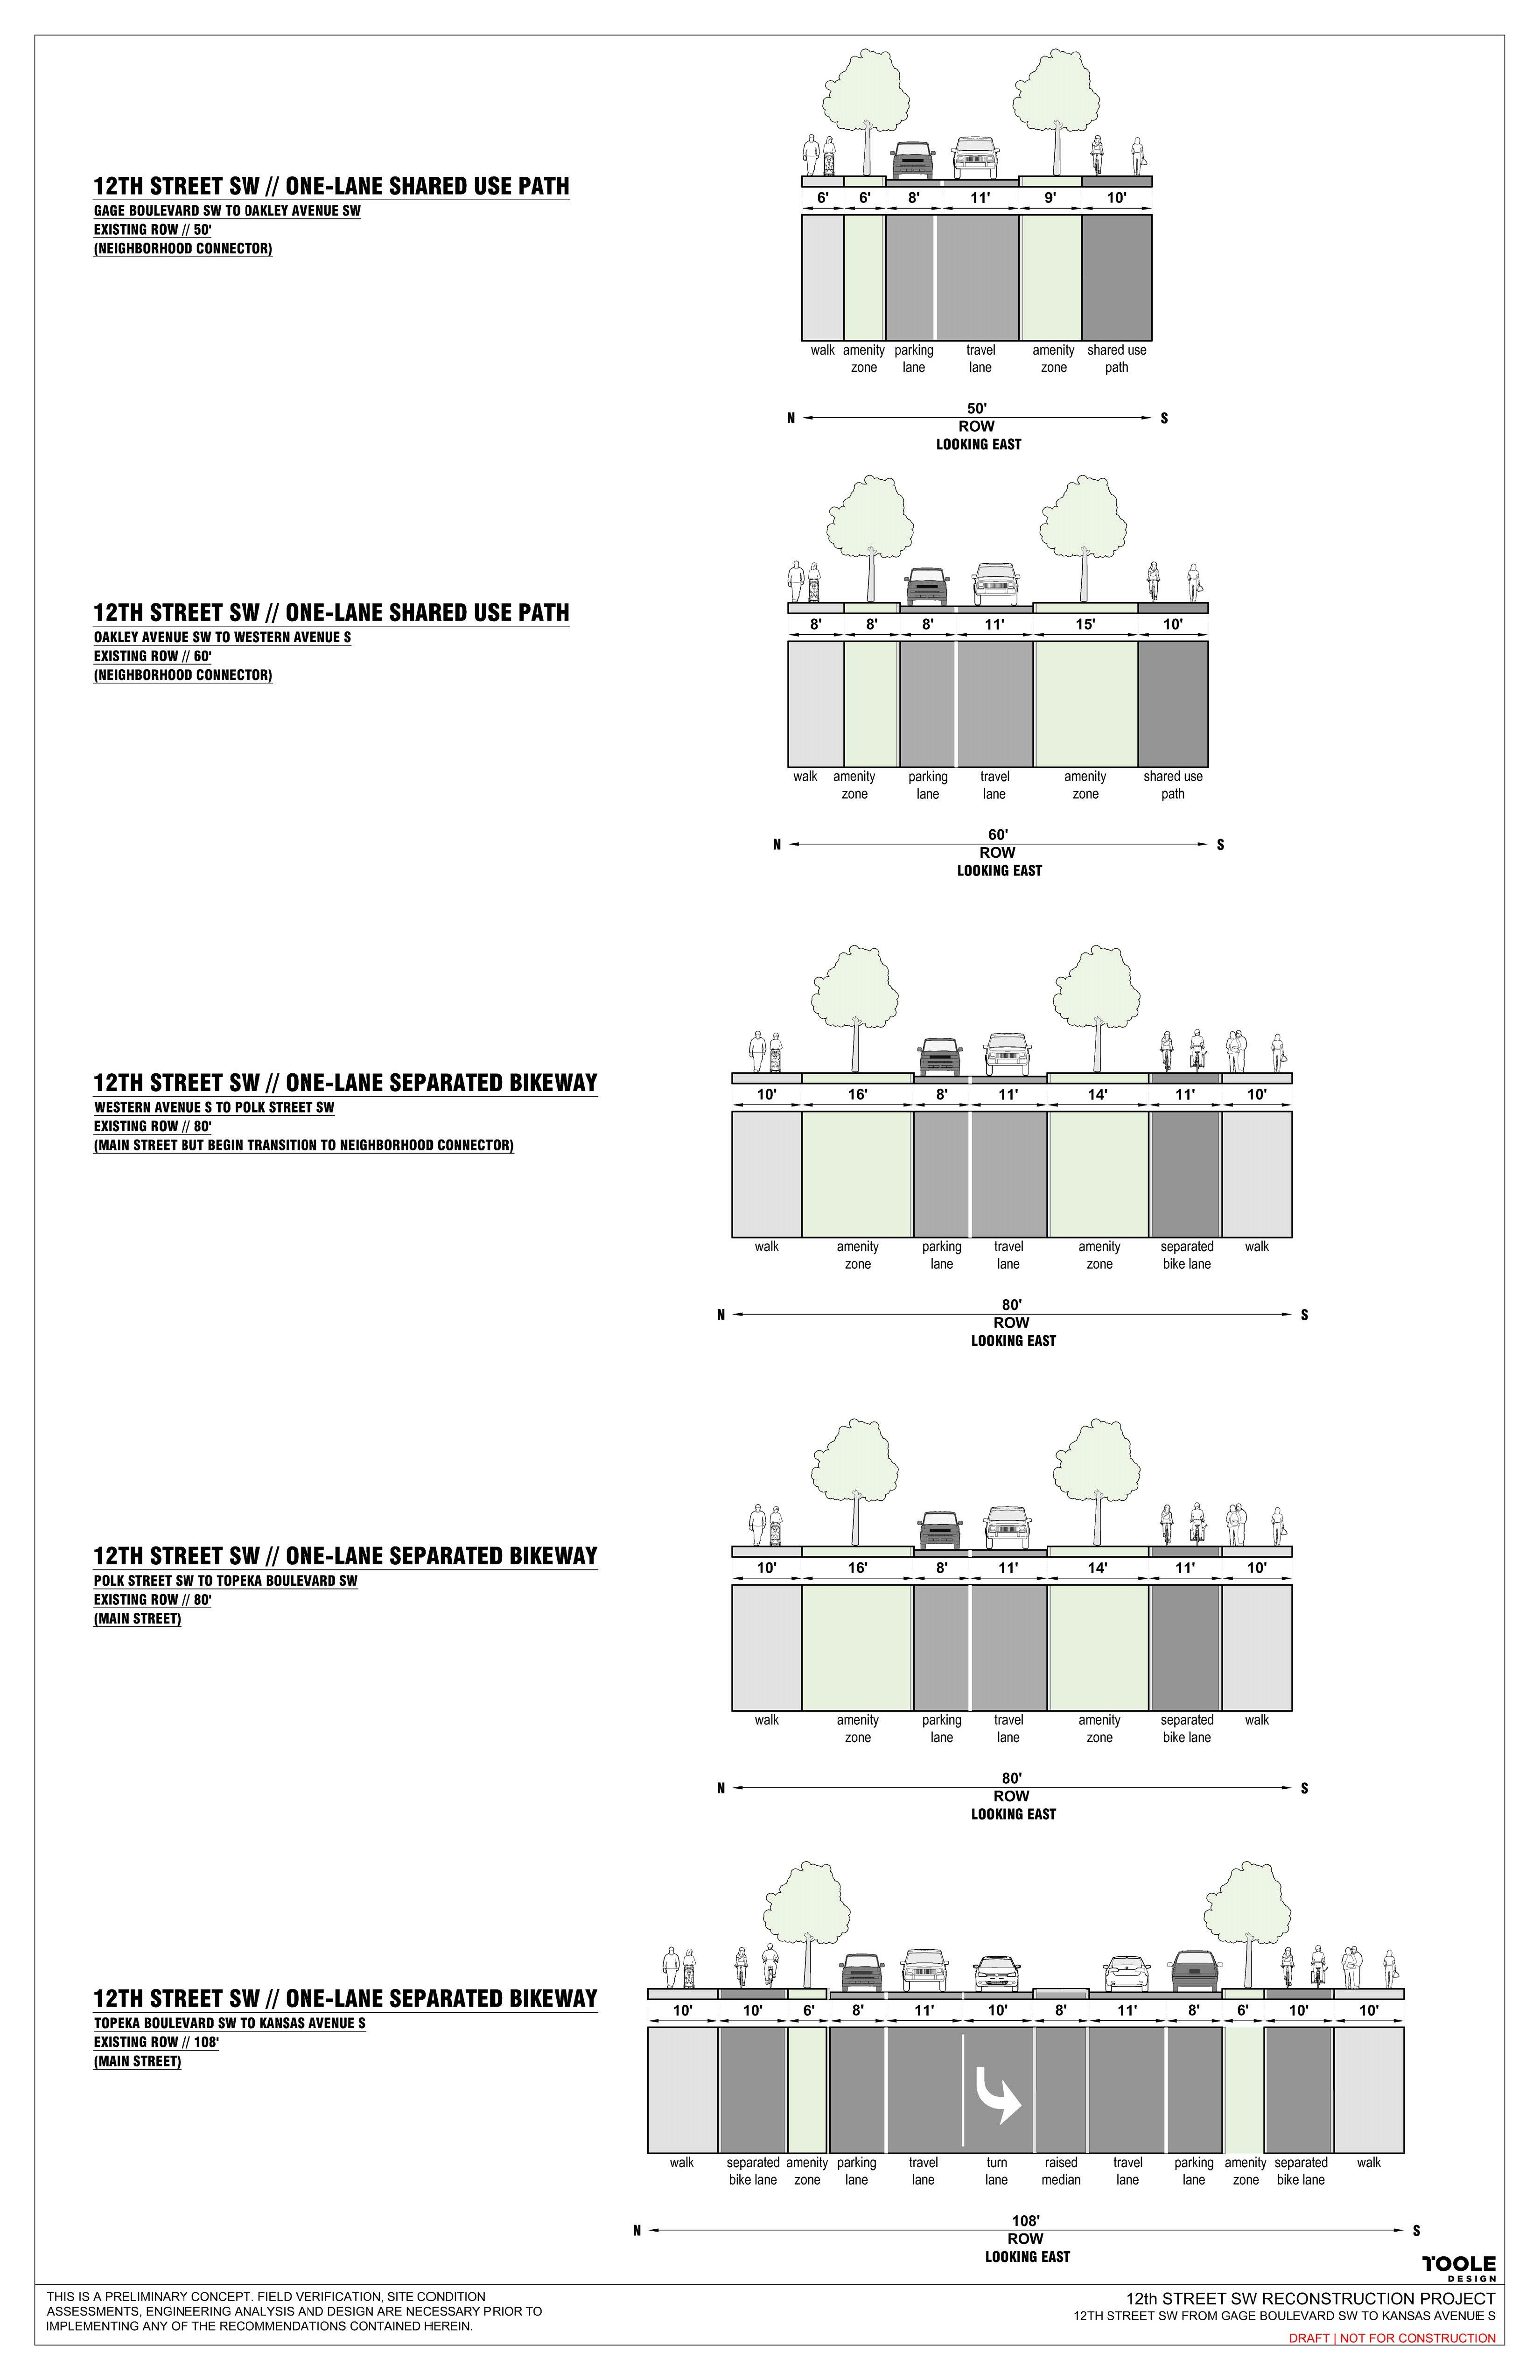 Diagram of proposed street conditions